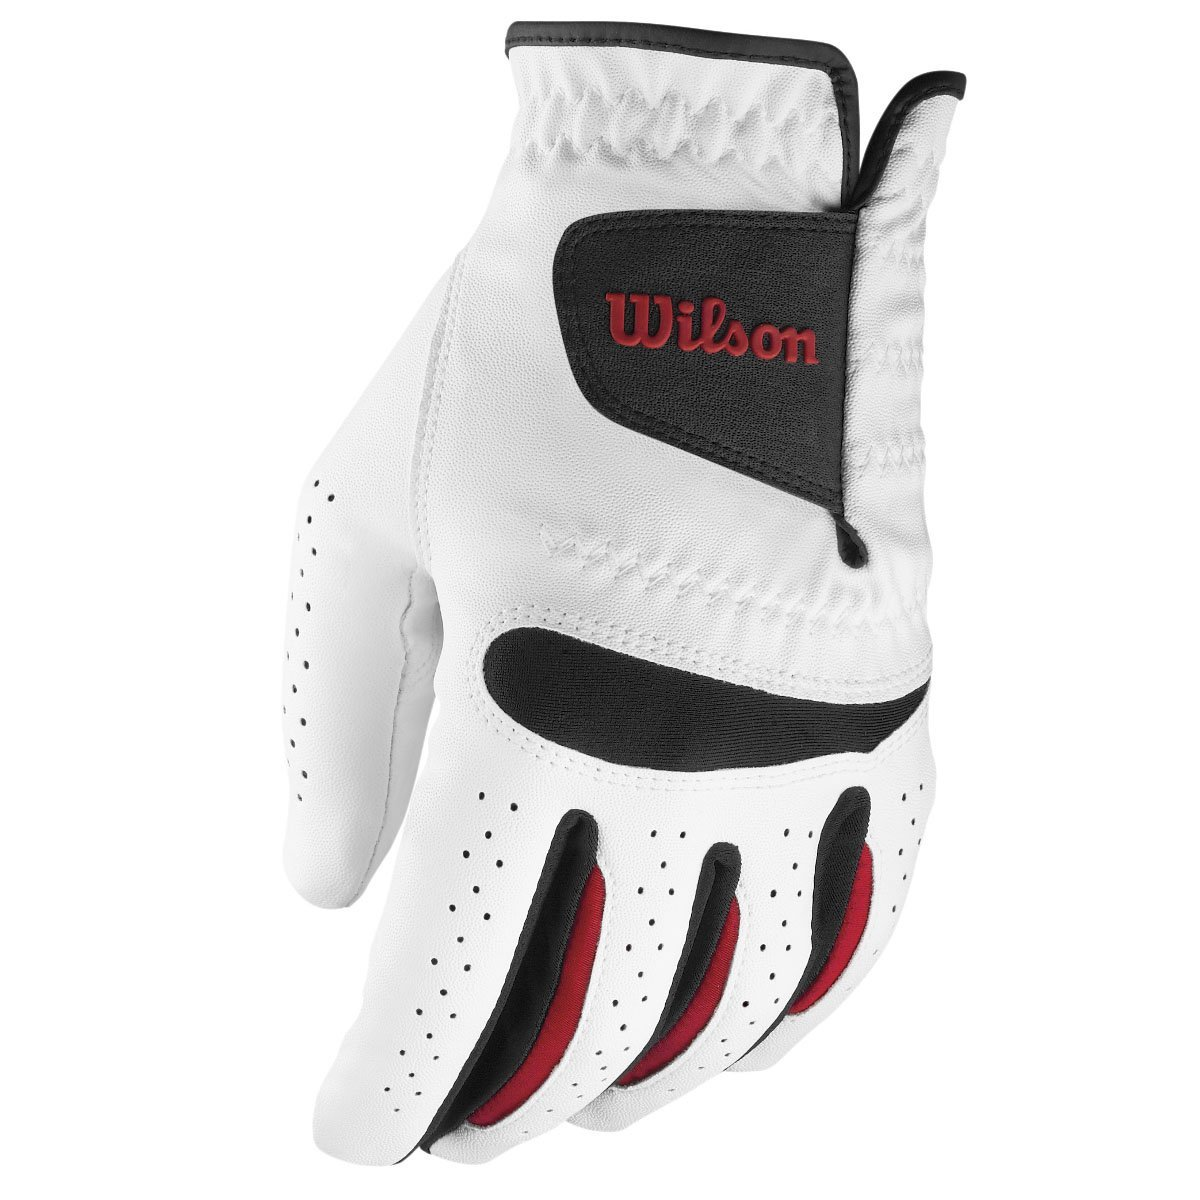 Mens leather gloves amazon uk - Wilson Feel Plus Golf Left Hand Glove Mens Weather Proof Synthetic Leather White Amazon Co Uk Sports Outdoors